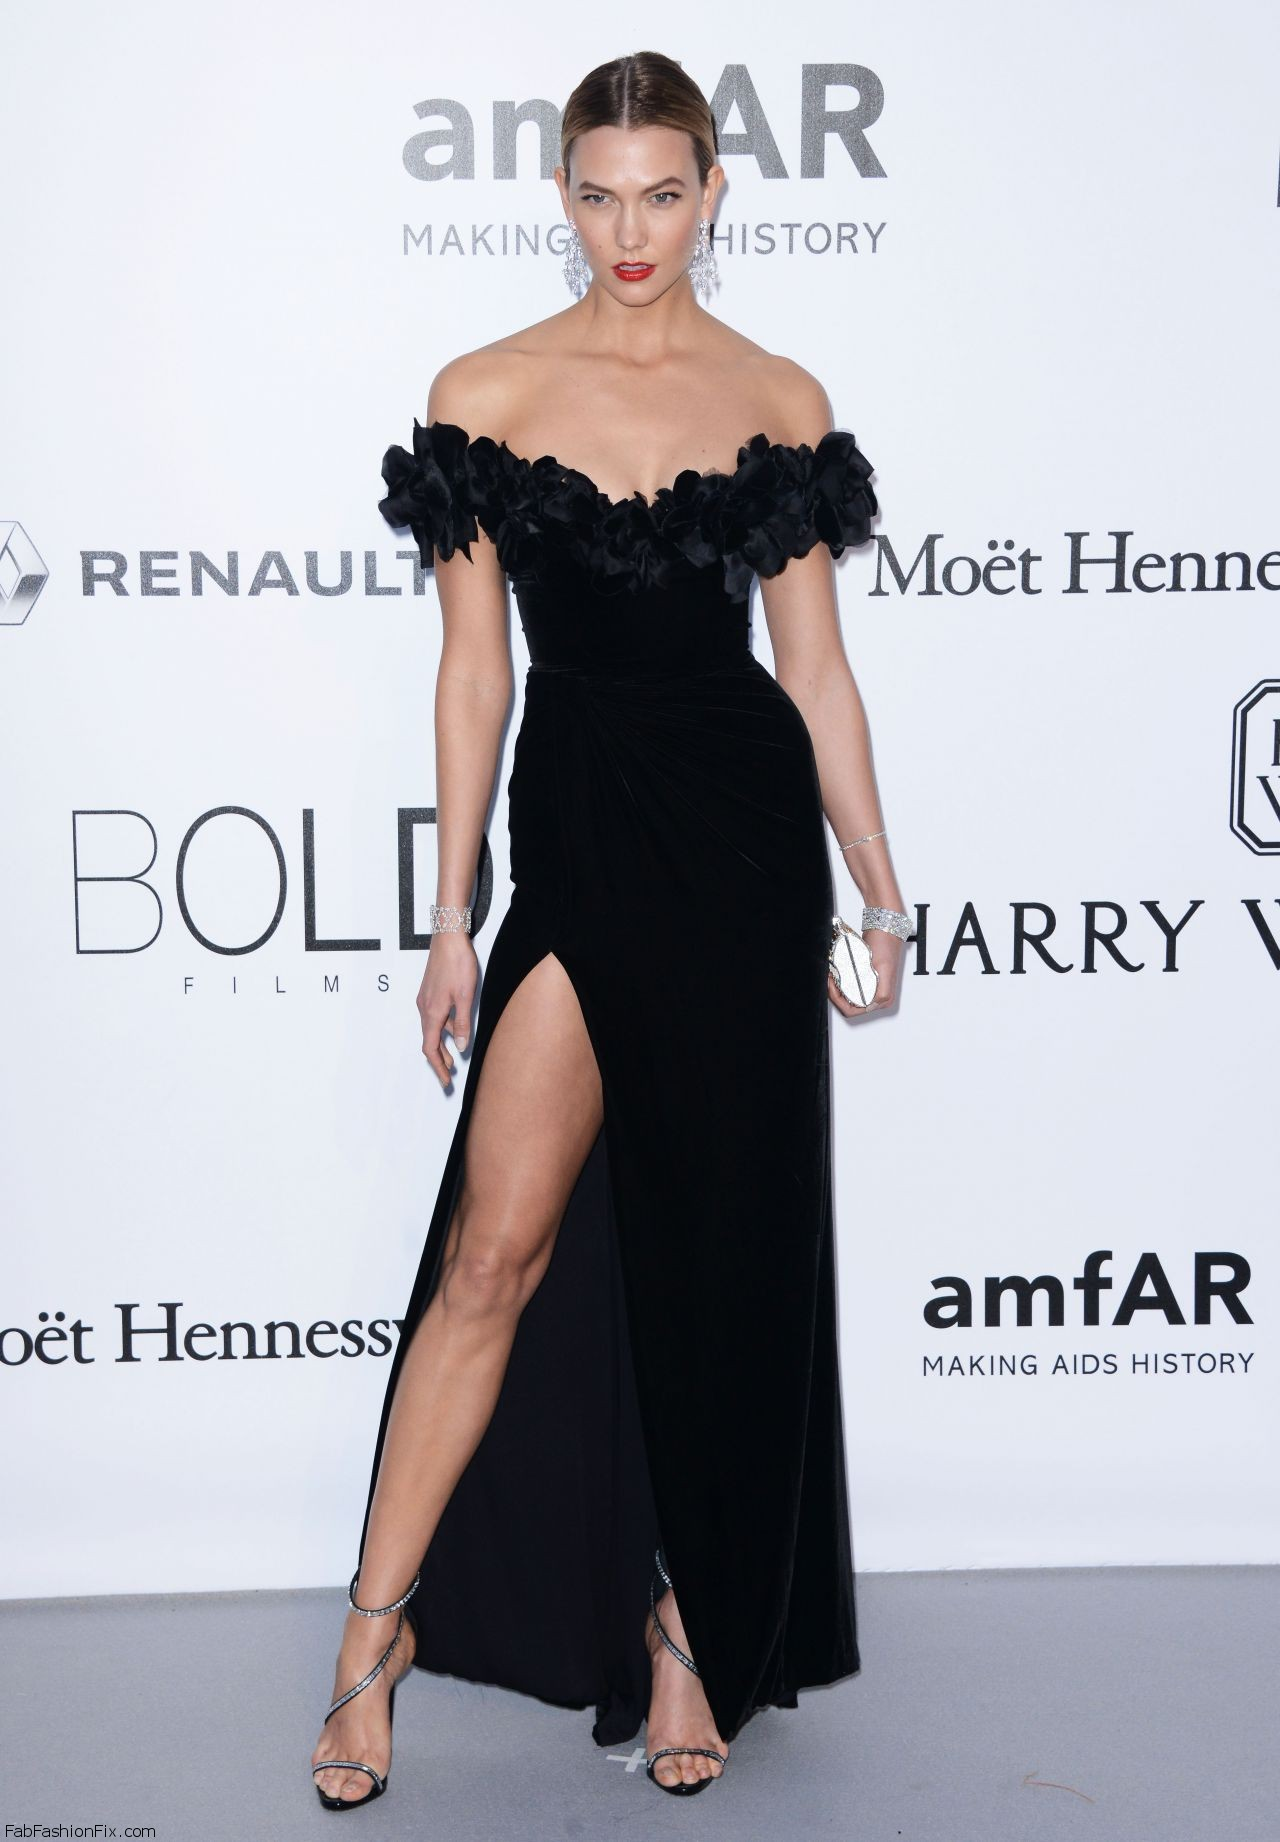 karlie-kloss-amfar-s-cinema-against-aids-gala-in-cap-d-antibes-france-5-19-2016-1